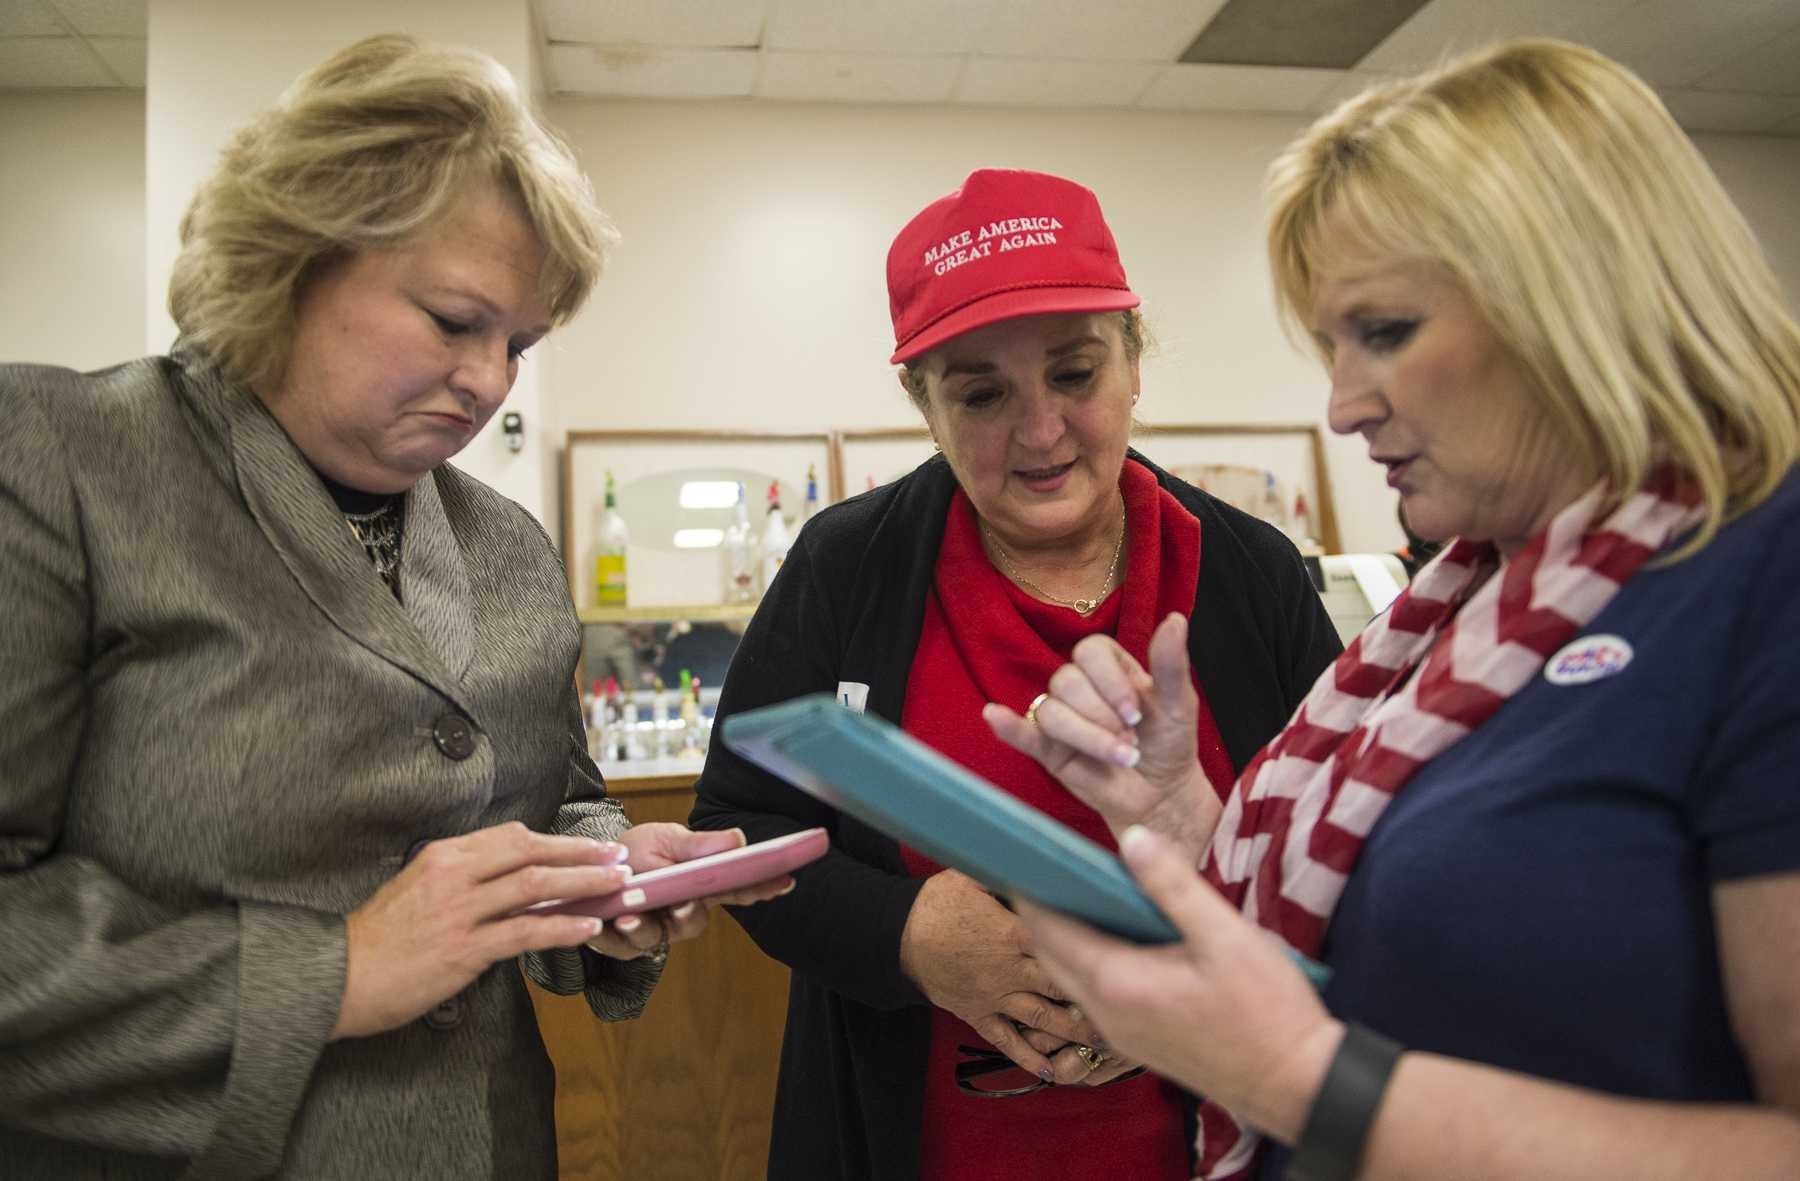 From left: Illinois State Rep. Terri Bryant, Gloria Campos and Debbie Pittman read through election results at a U.S. Rep. Mike Bost and Illinois State Rep. Terri Bryant victory party Tuesday, Nov. 8, 2016, at the Elks Lodge in Murphysboro. (Ryan Michalesko | @photosbylesko)